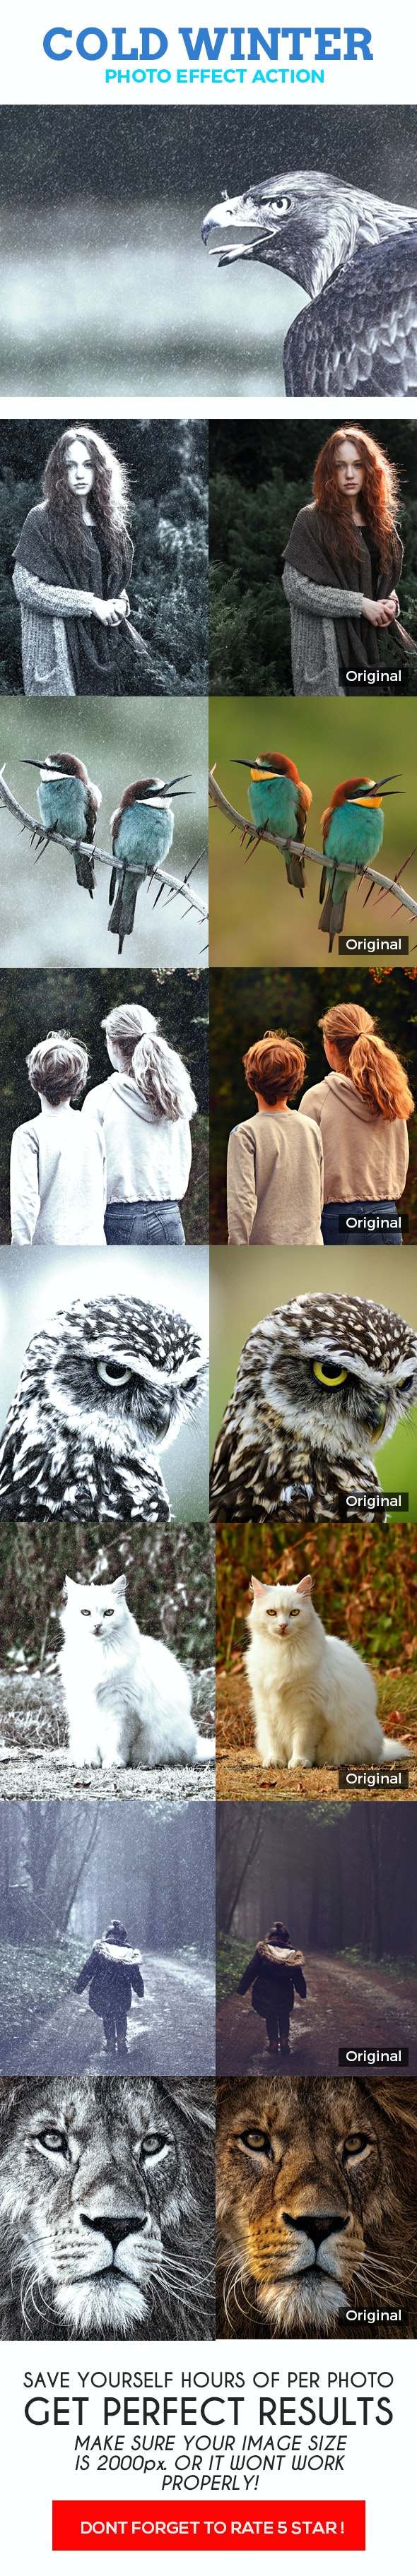 Cold Winter Effect Action - Photo Effects Actions